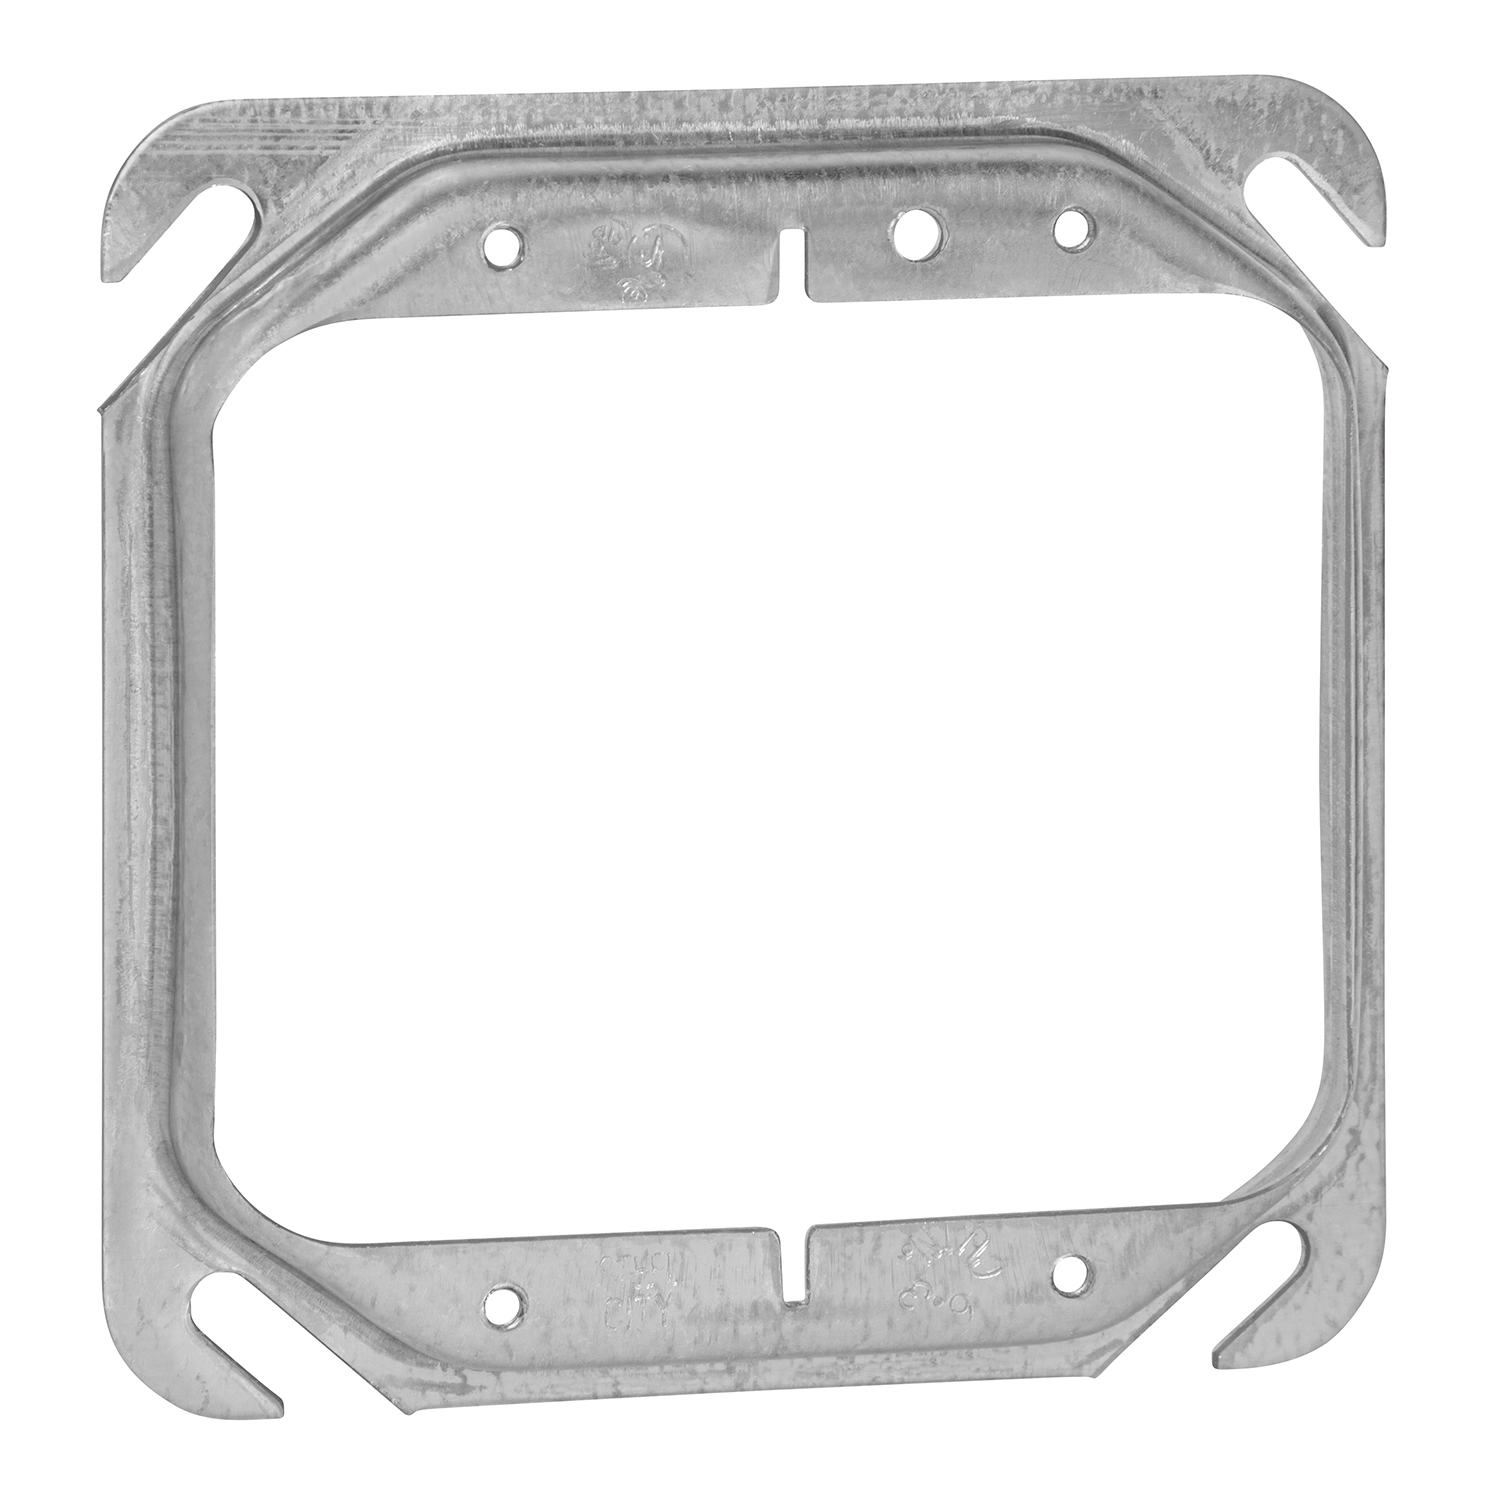 "STEELCTY 52C17-25 4"" SQUARE RING 2G, 1/2"" RAISED, 6.3CU"